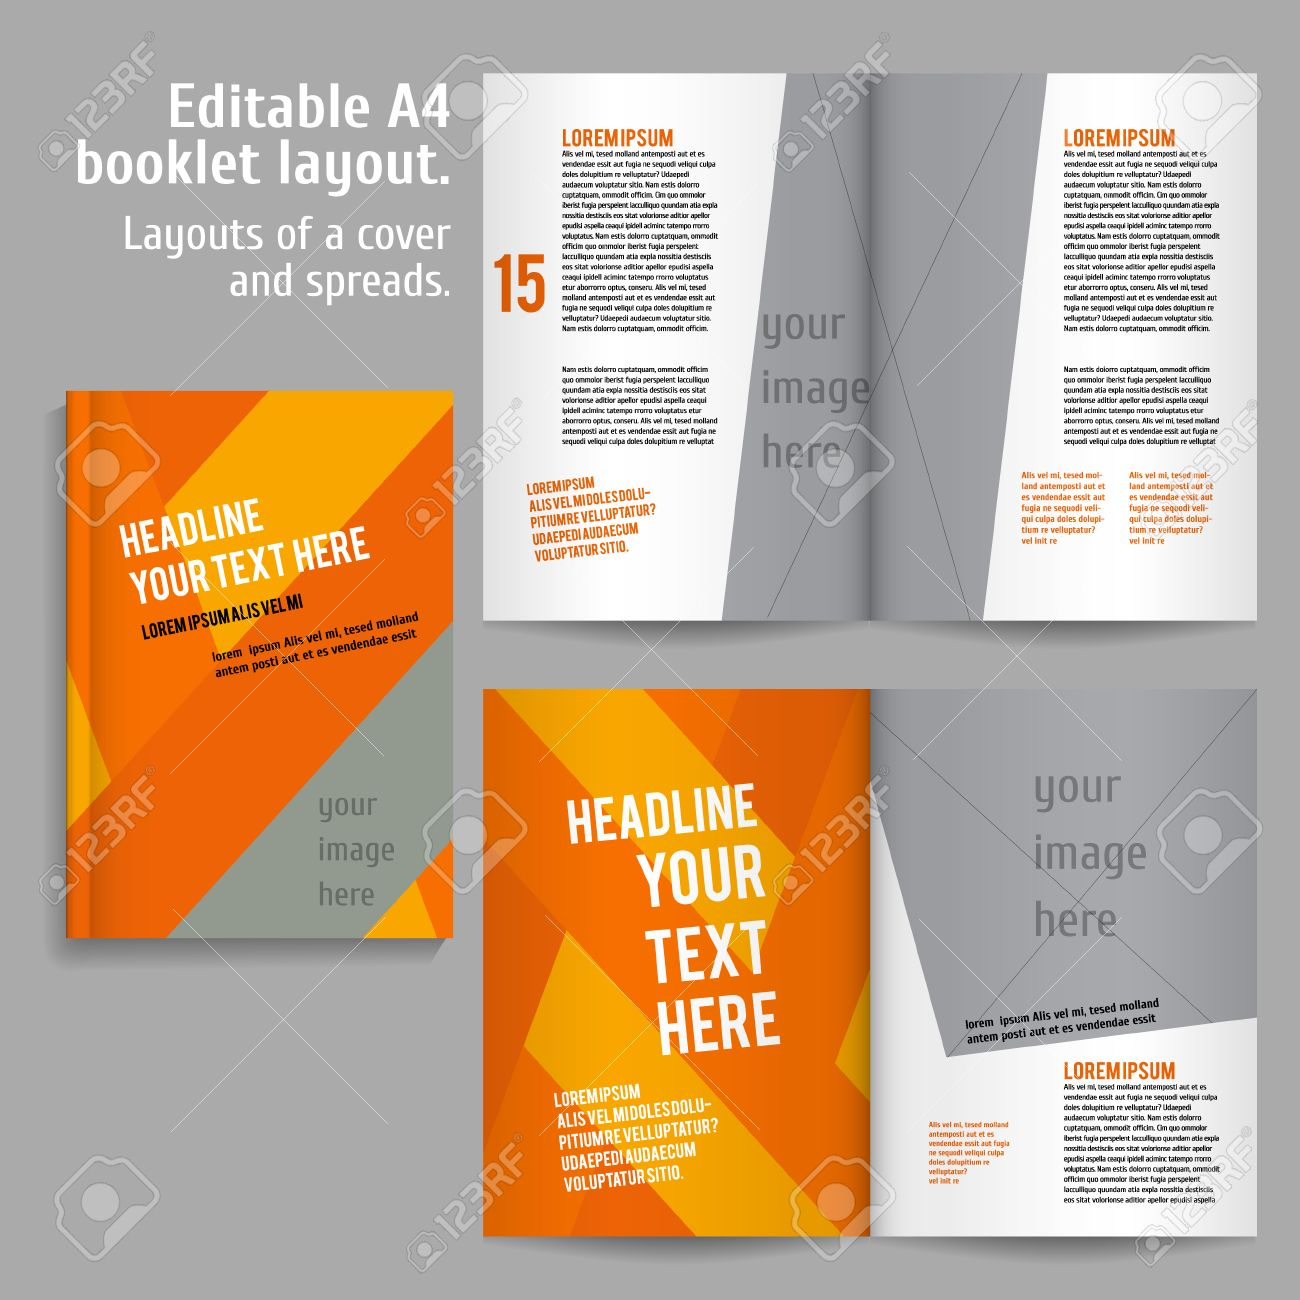 A4 book layout design template with cover and 2 spreads of contents a4 book layout design template with cover and 2 spreads of contents preview for design maxwellsz